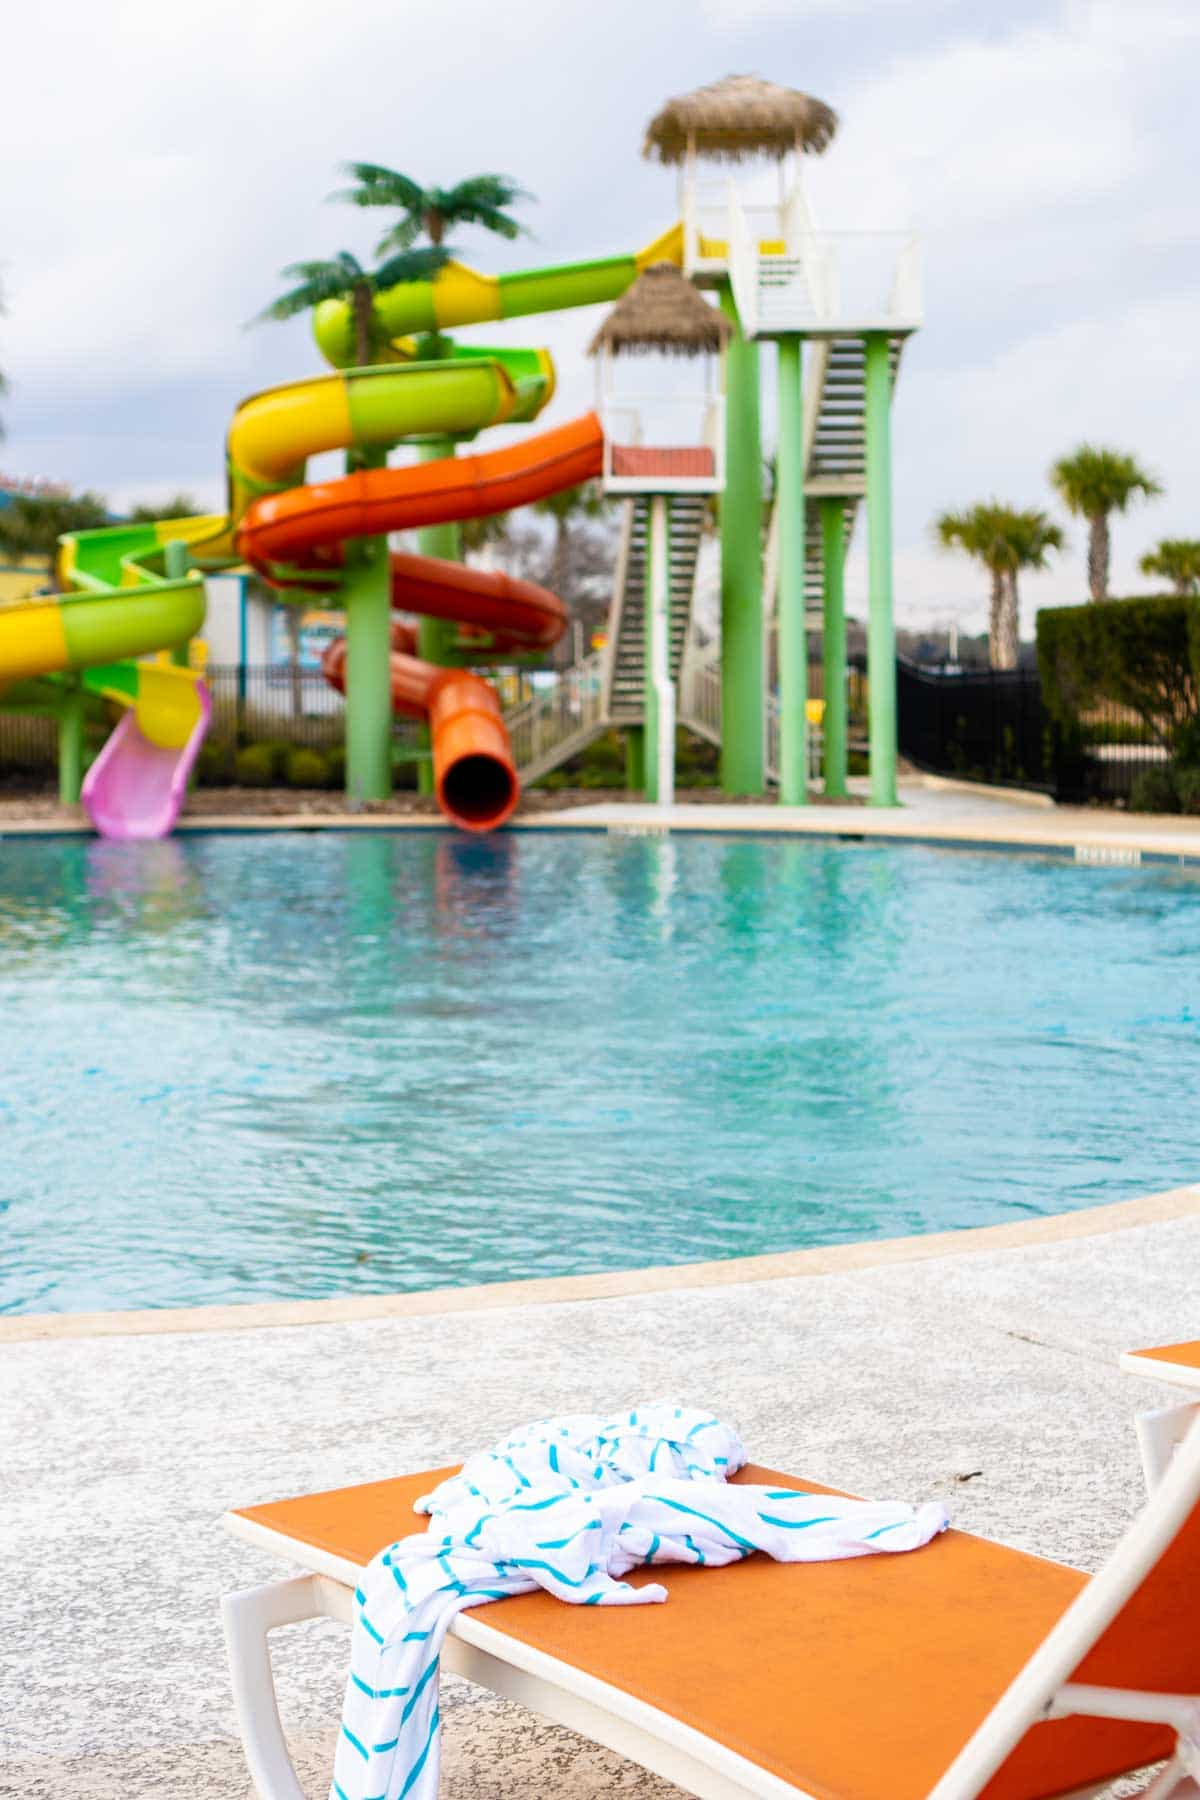 Water slides and a pool at Margaritaville Lake Conroe